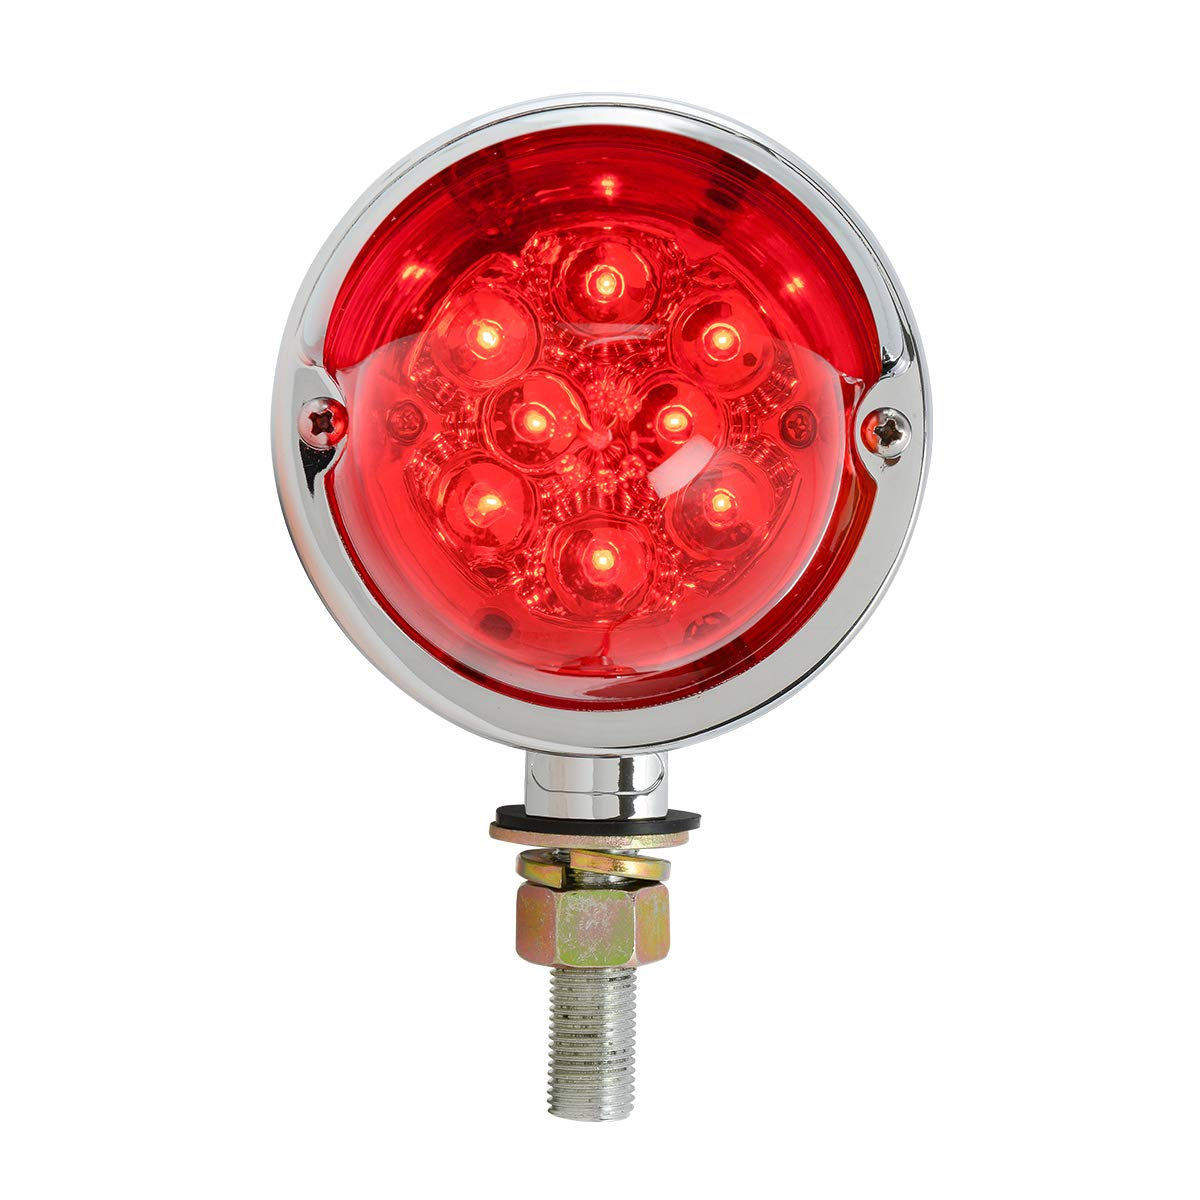 GG Grand General 77923 LED Light Spyder Red with Clear Rim and Visor, 2 Function